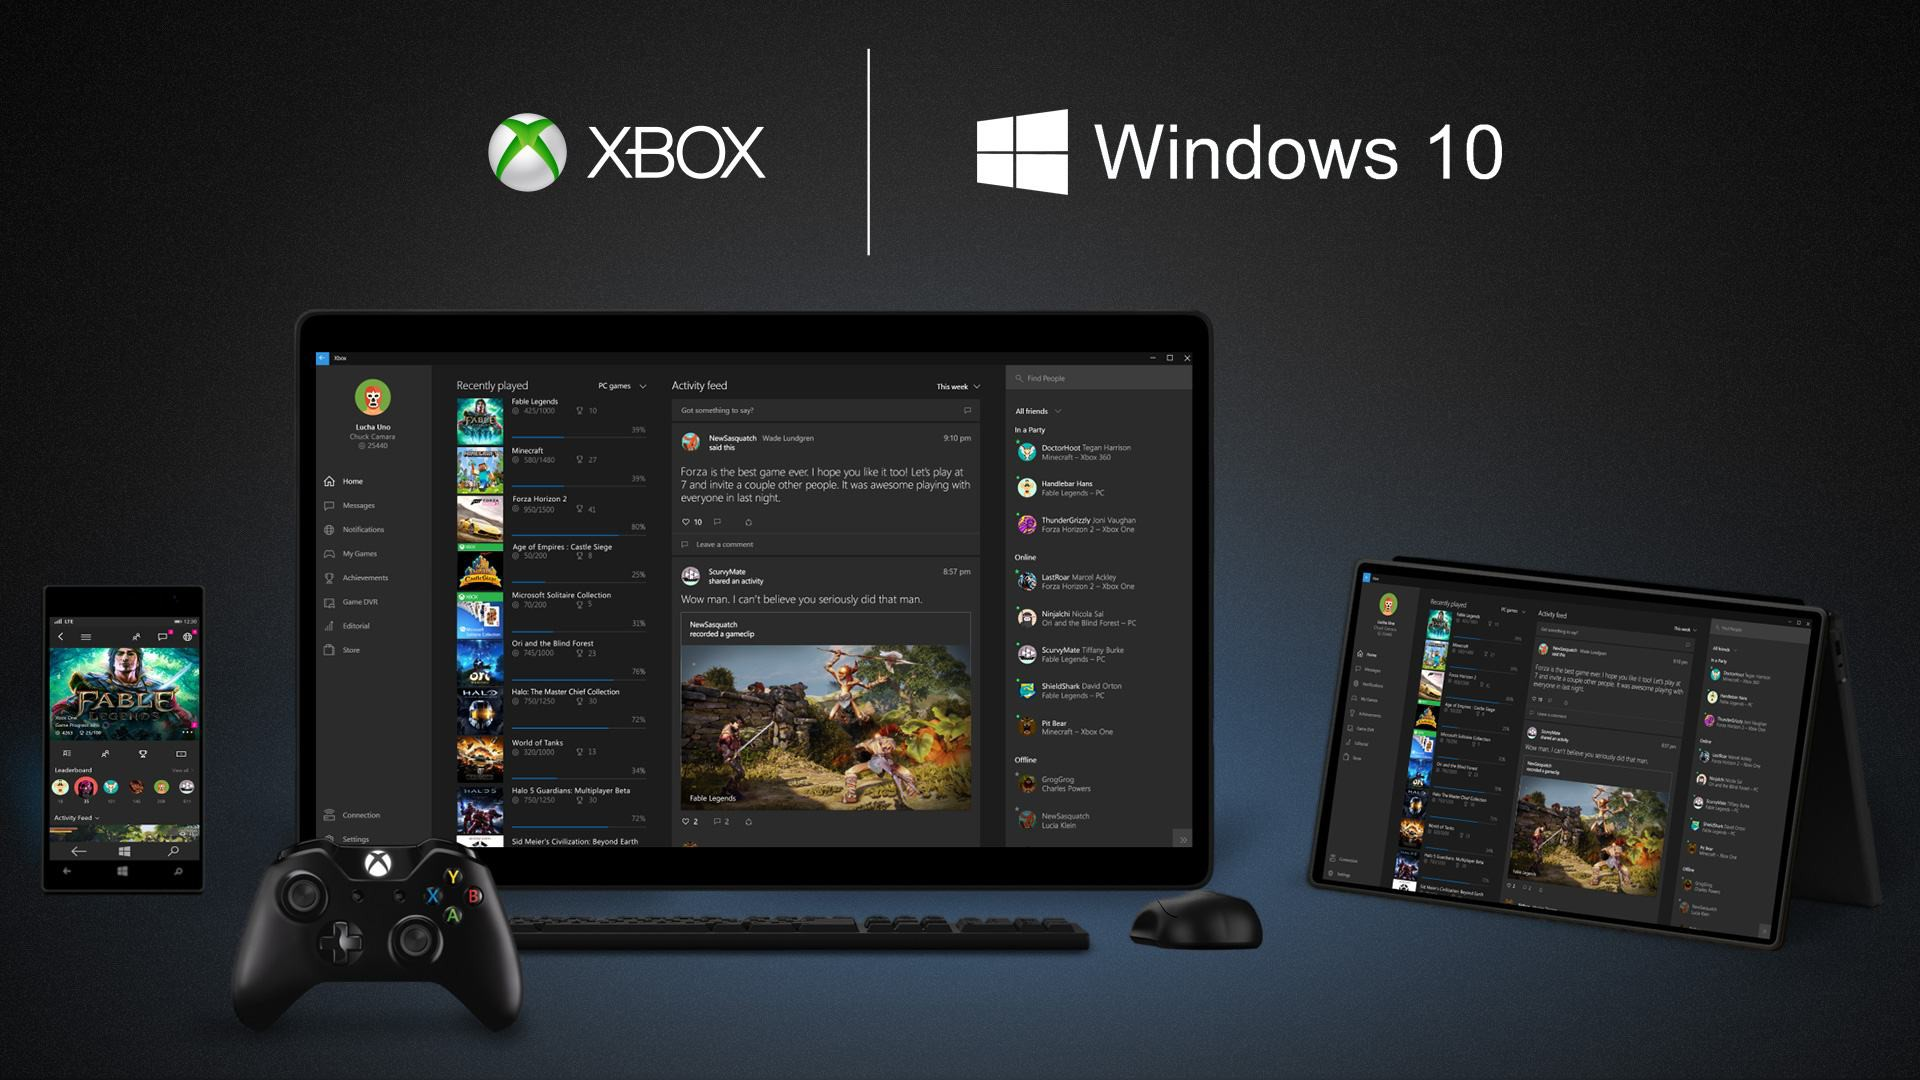 XBOX ONE STREAMING WINDOWS 10